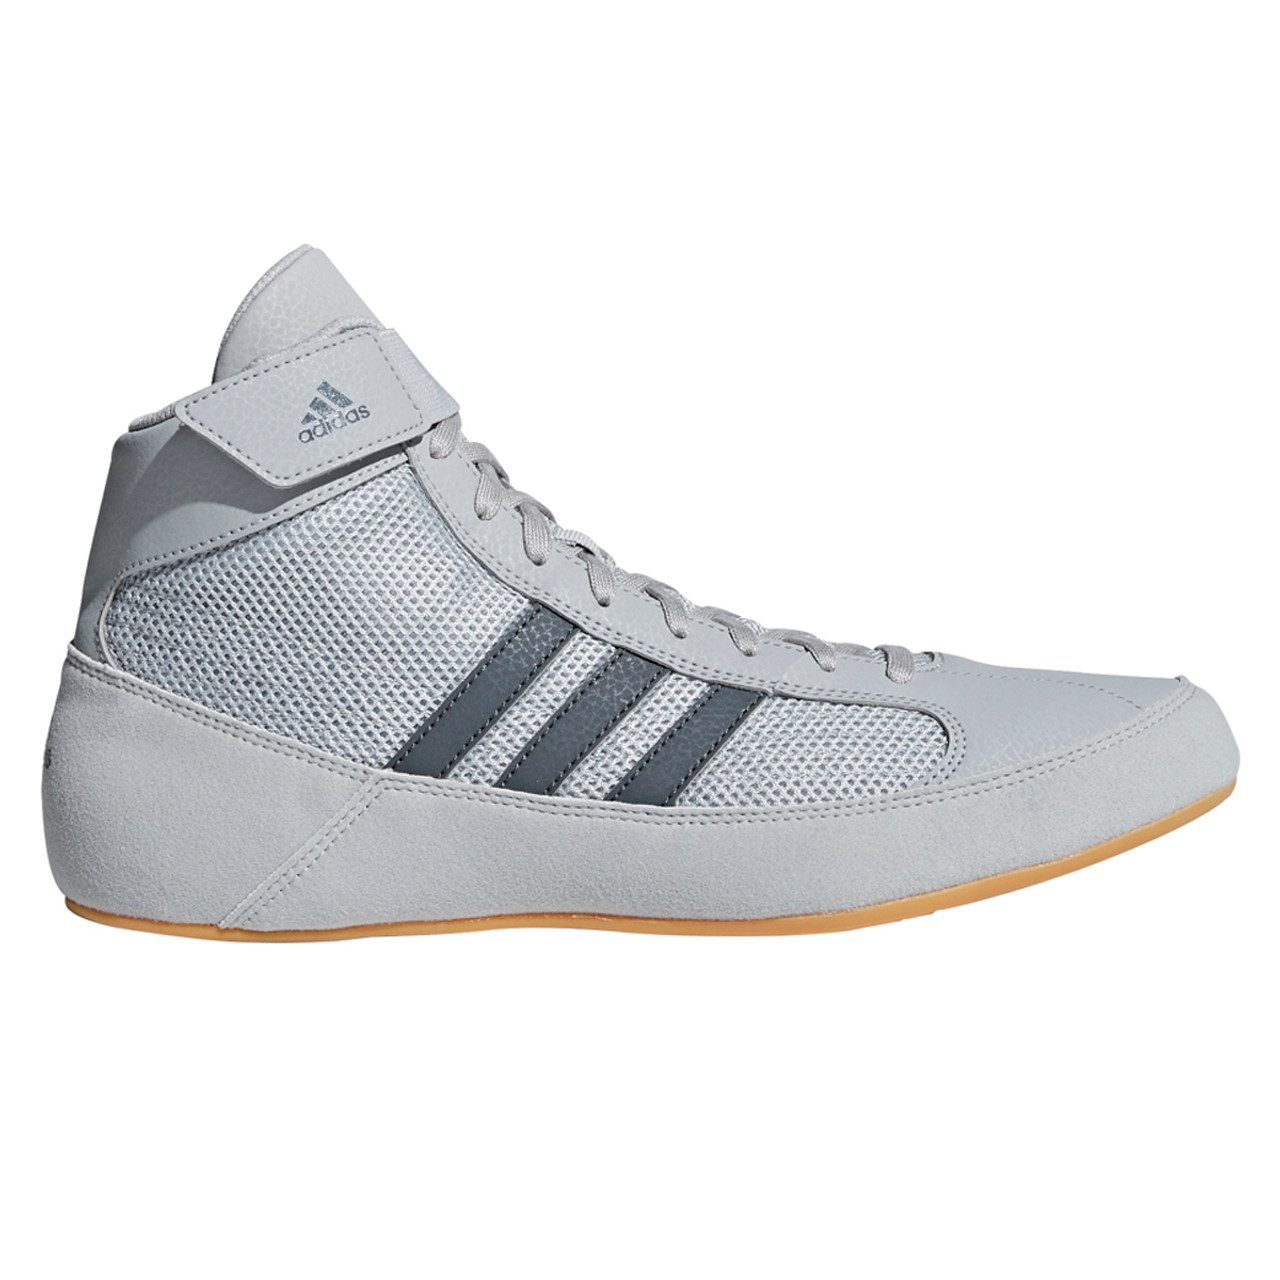 Adidas HVC 2 Senior Adult Wrestling Shoes AC7502 Gray